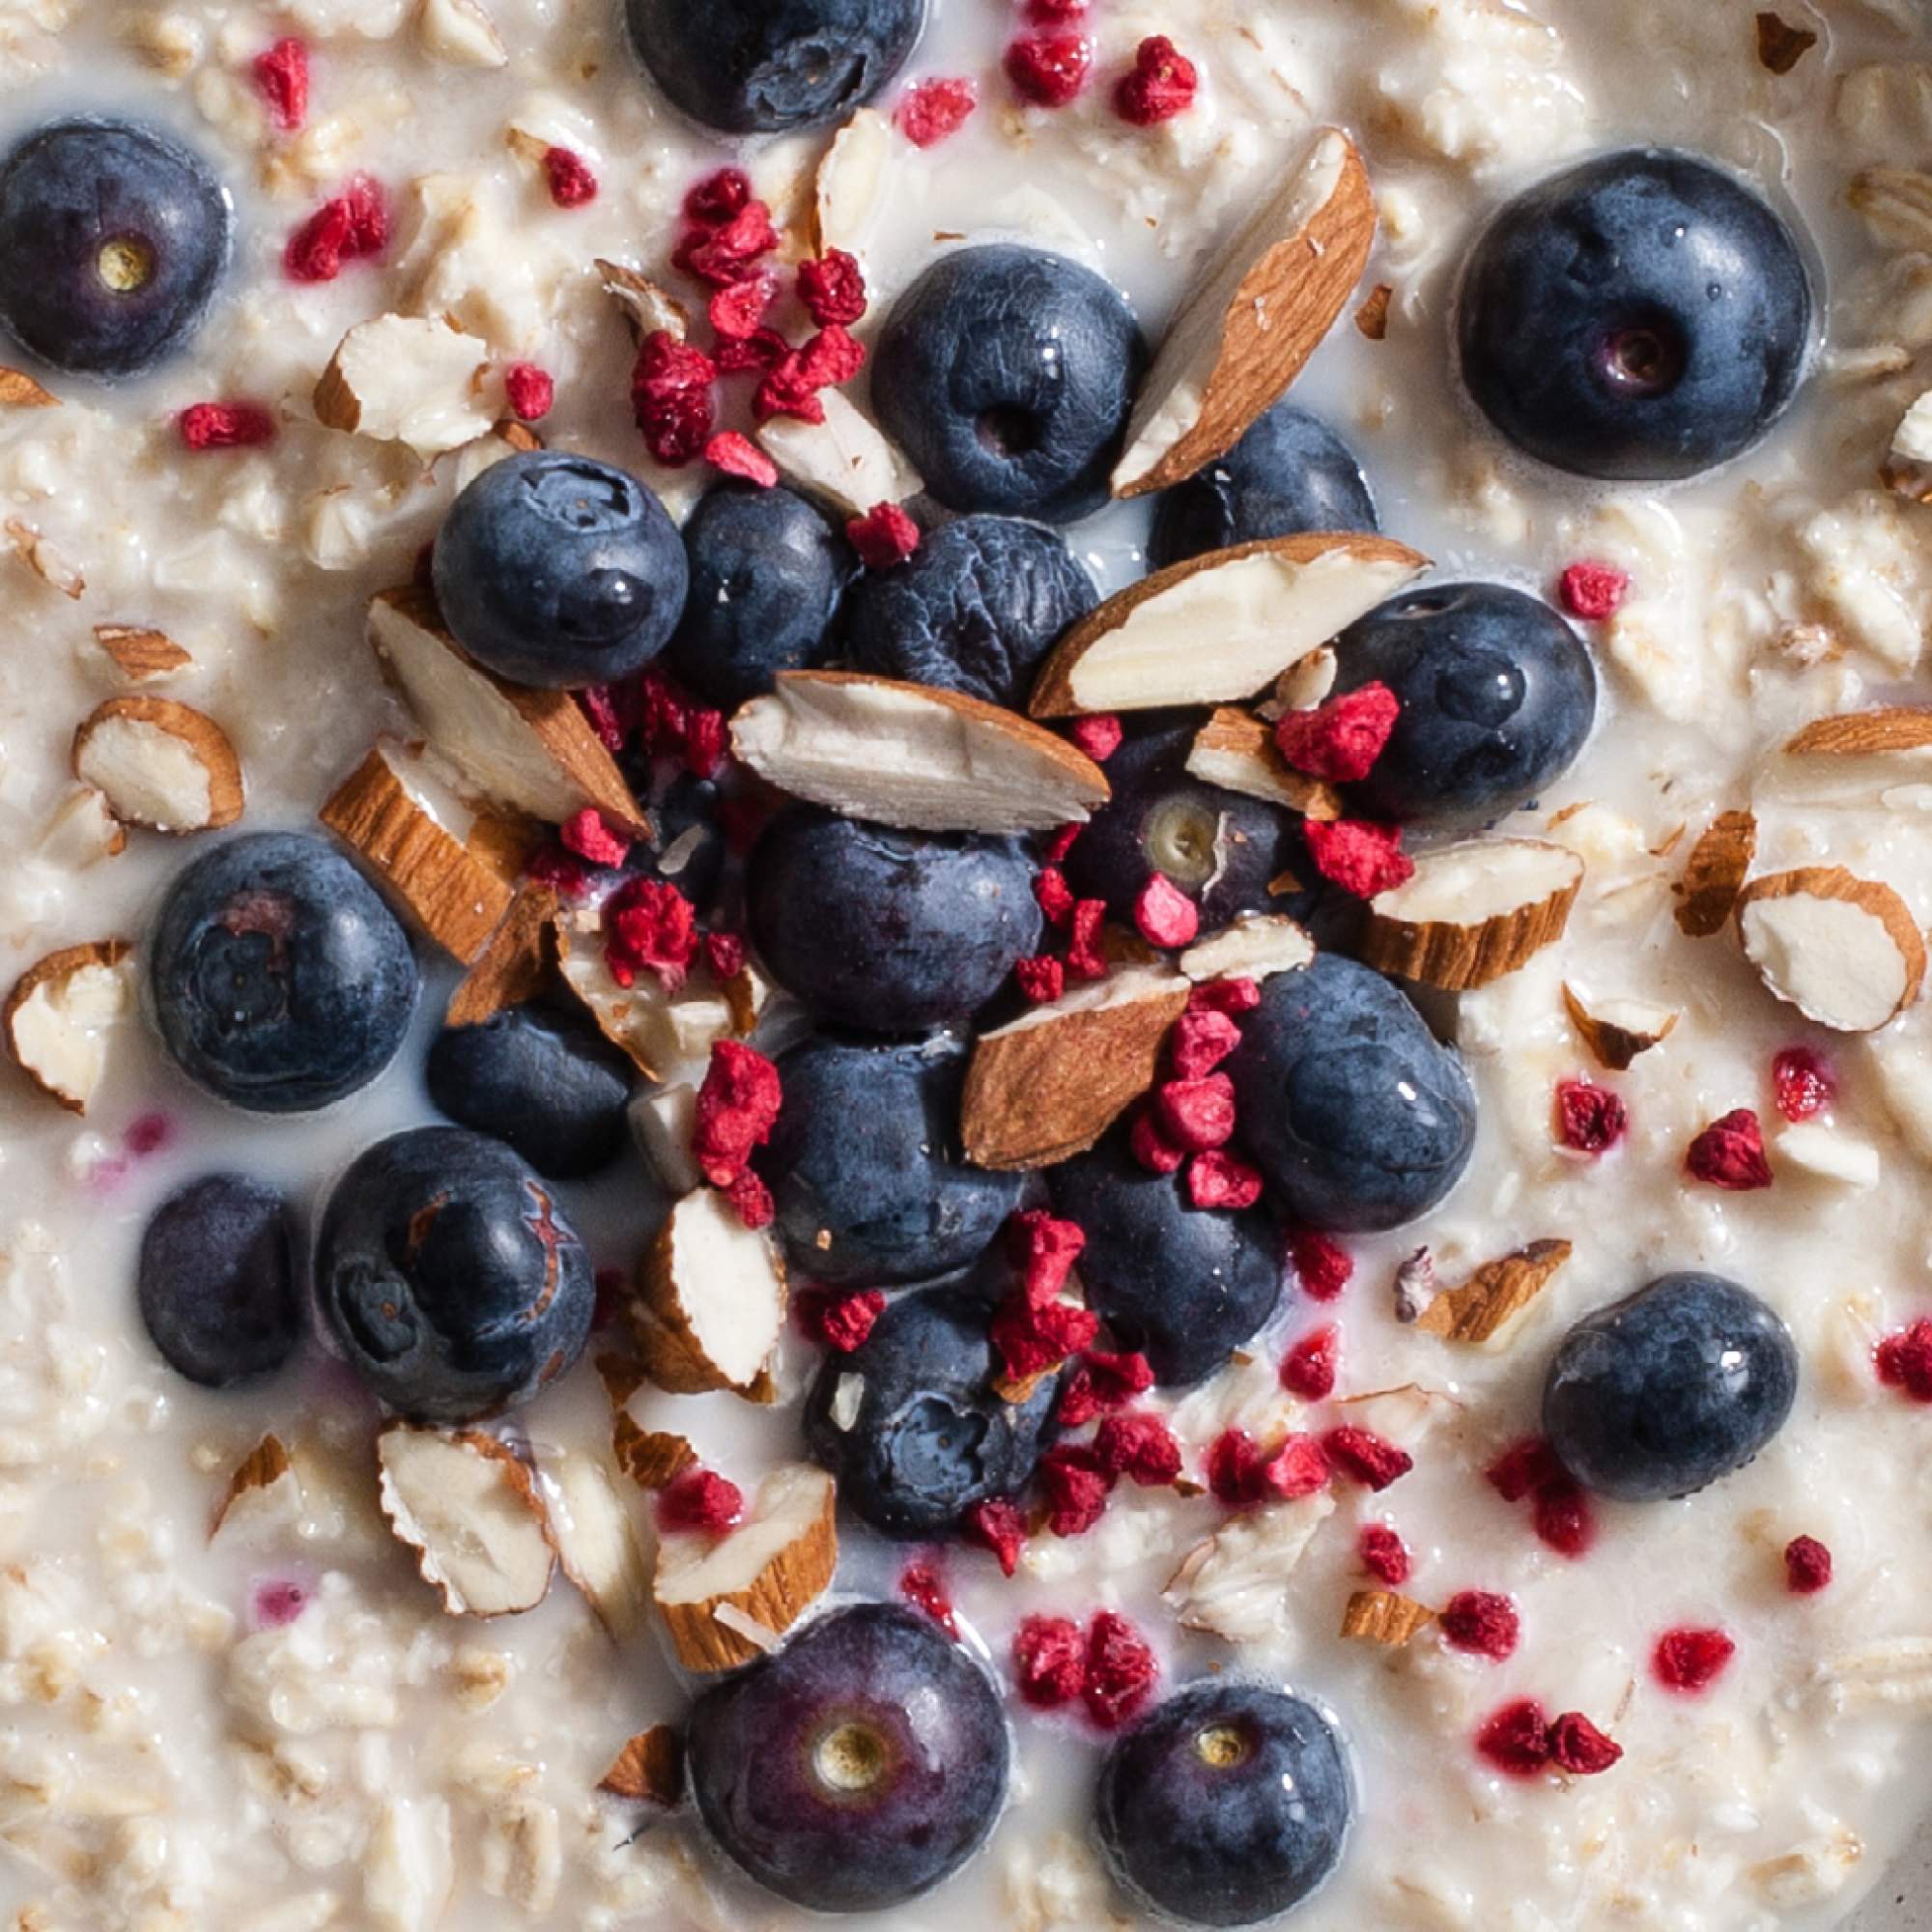 Get healthy in 2017 with these vibrant and nutritious porridge ideas inspired by Norway. Blueberries, freeze dried raspberries & almonds. #freezedriedraspberries